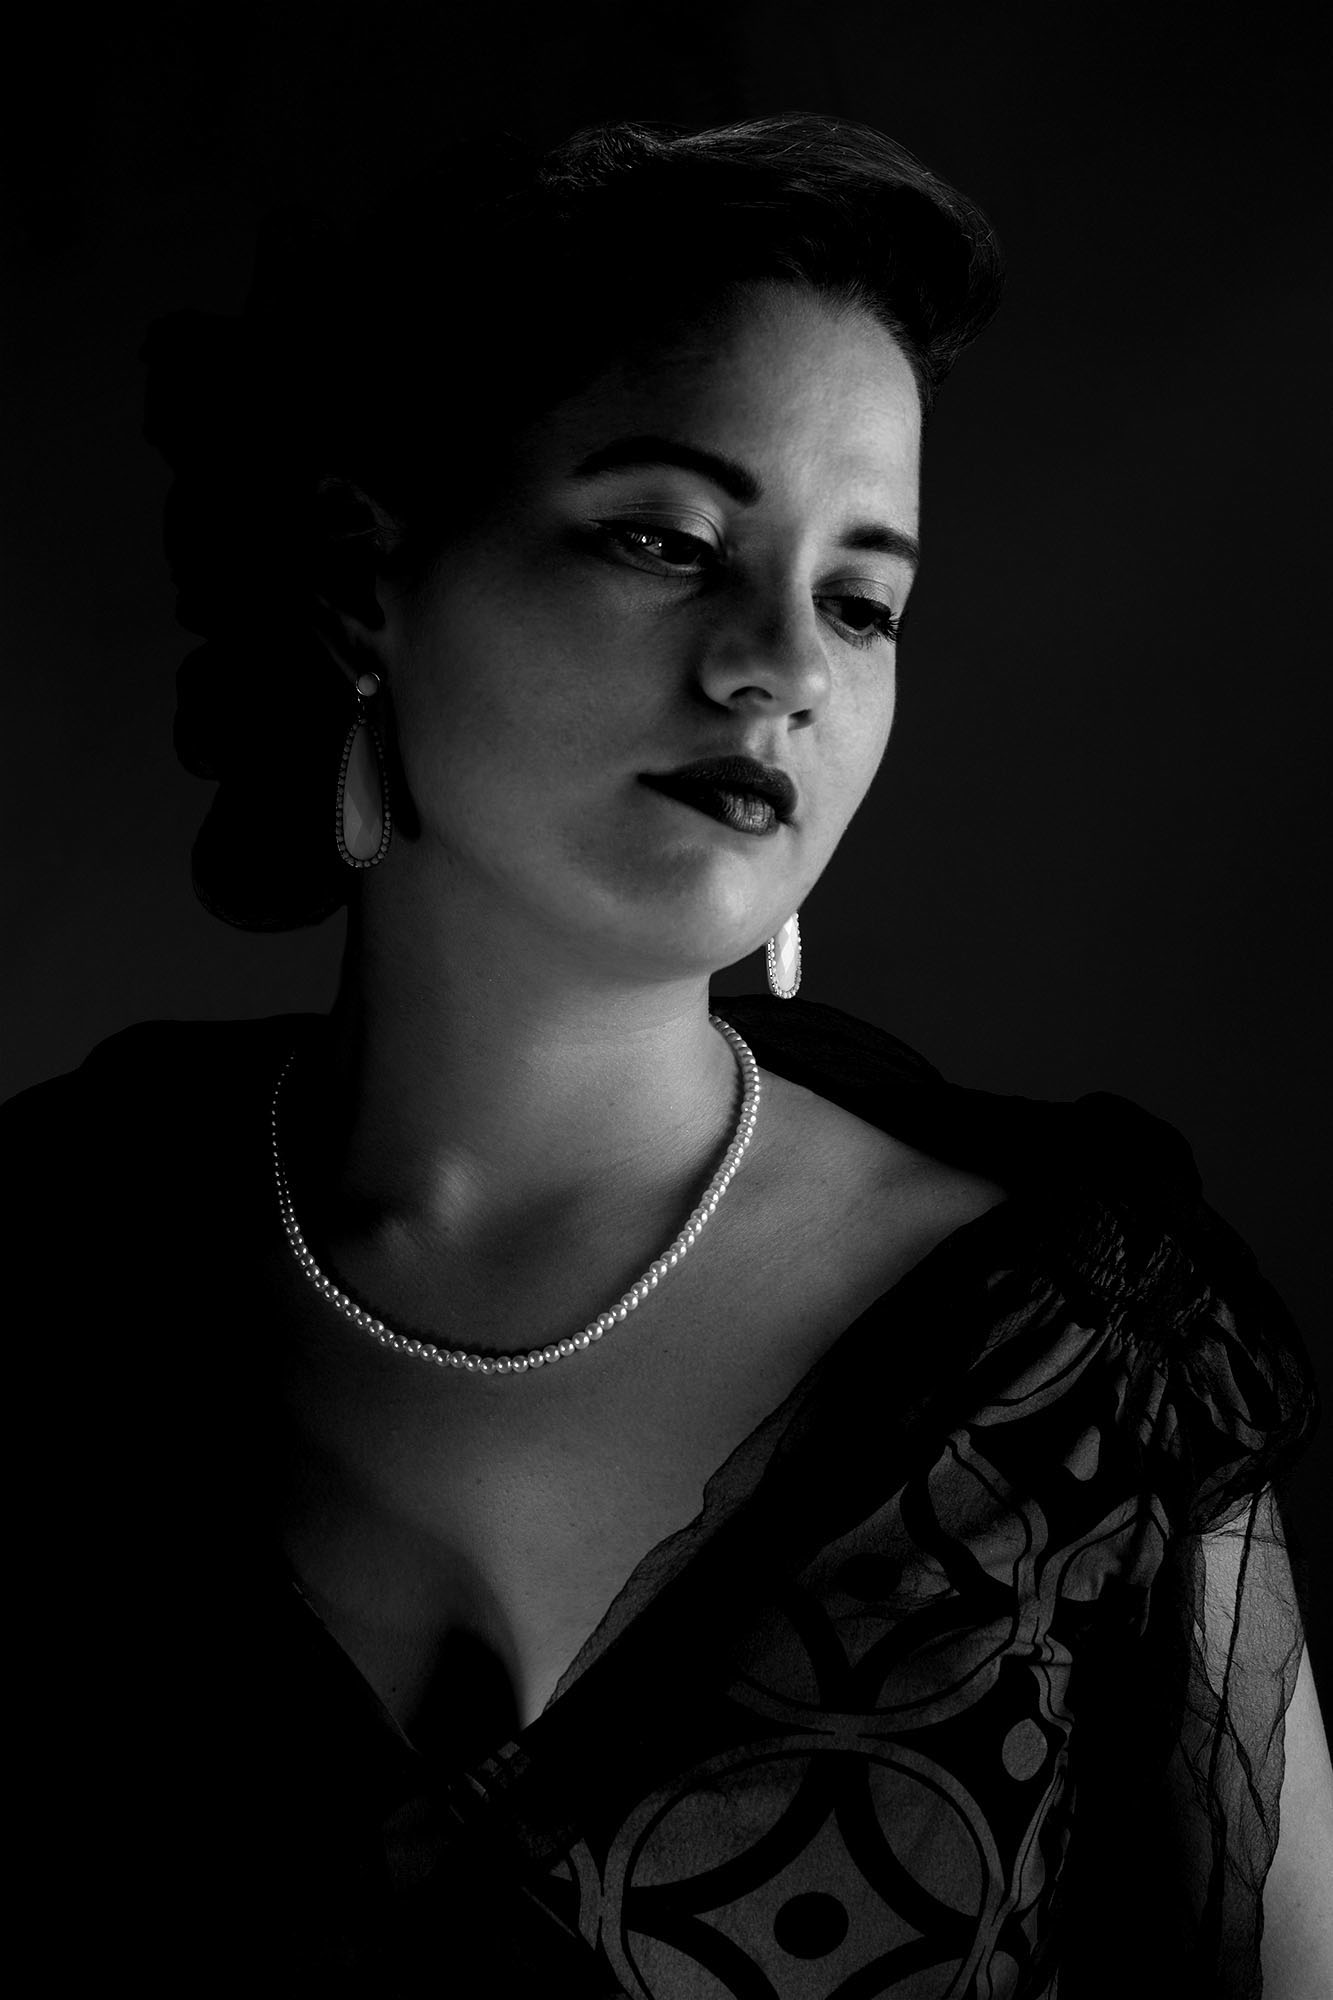 old hollywood lighting. The Objective Of This Project Was To Recreate Famous Old Hollywood Portrait Lighting Setups. U